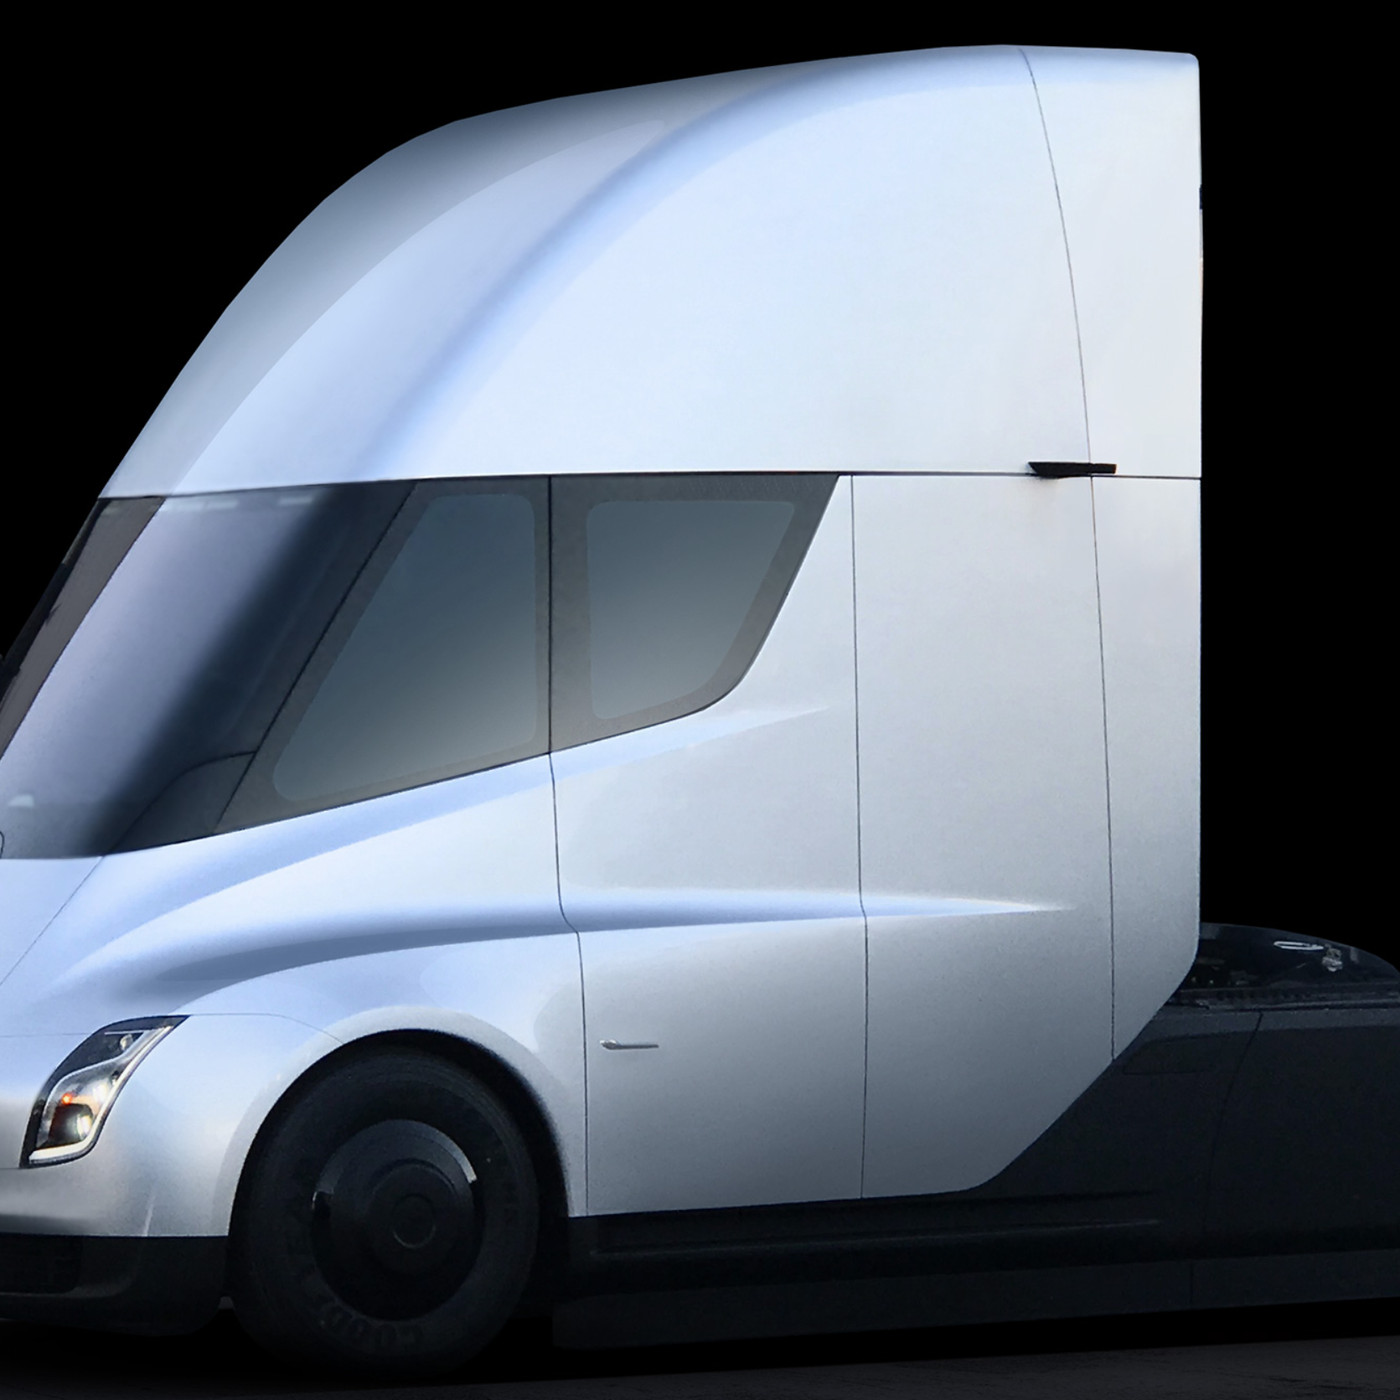 Tesla's electric semi truck: Elon Musk unveils his new